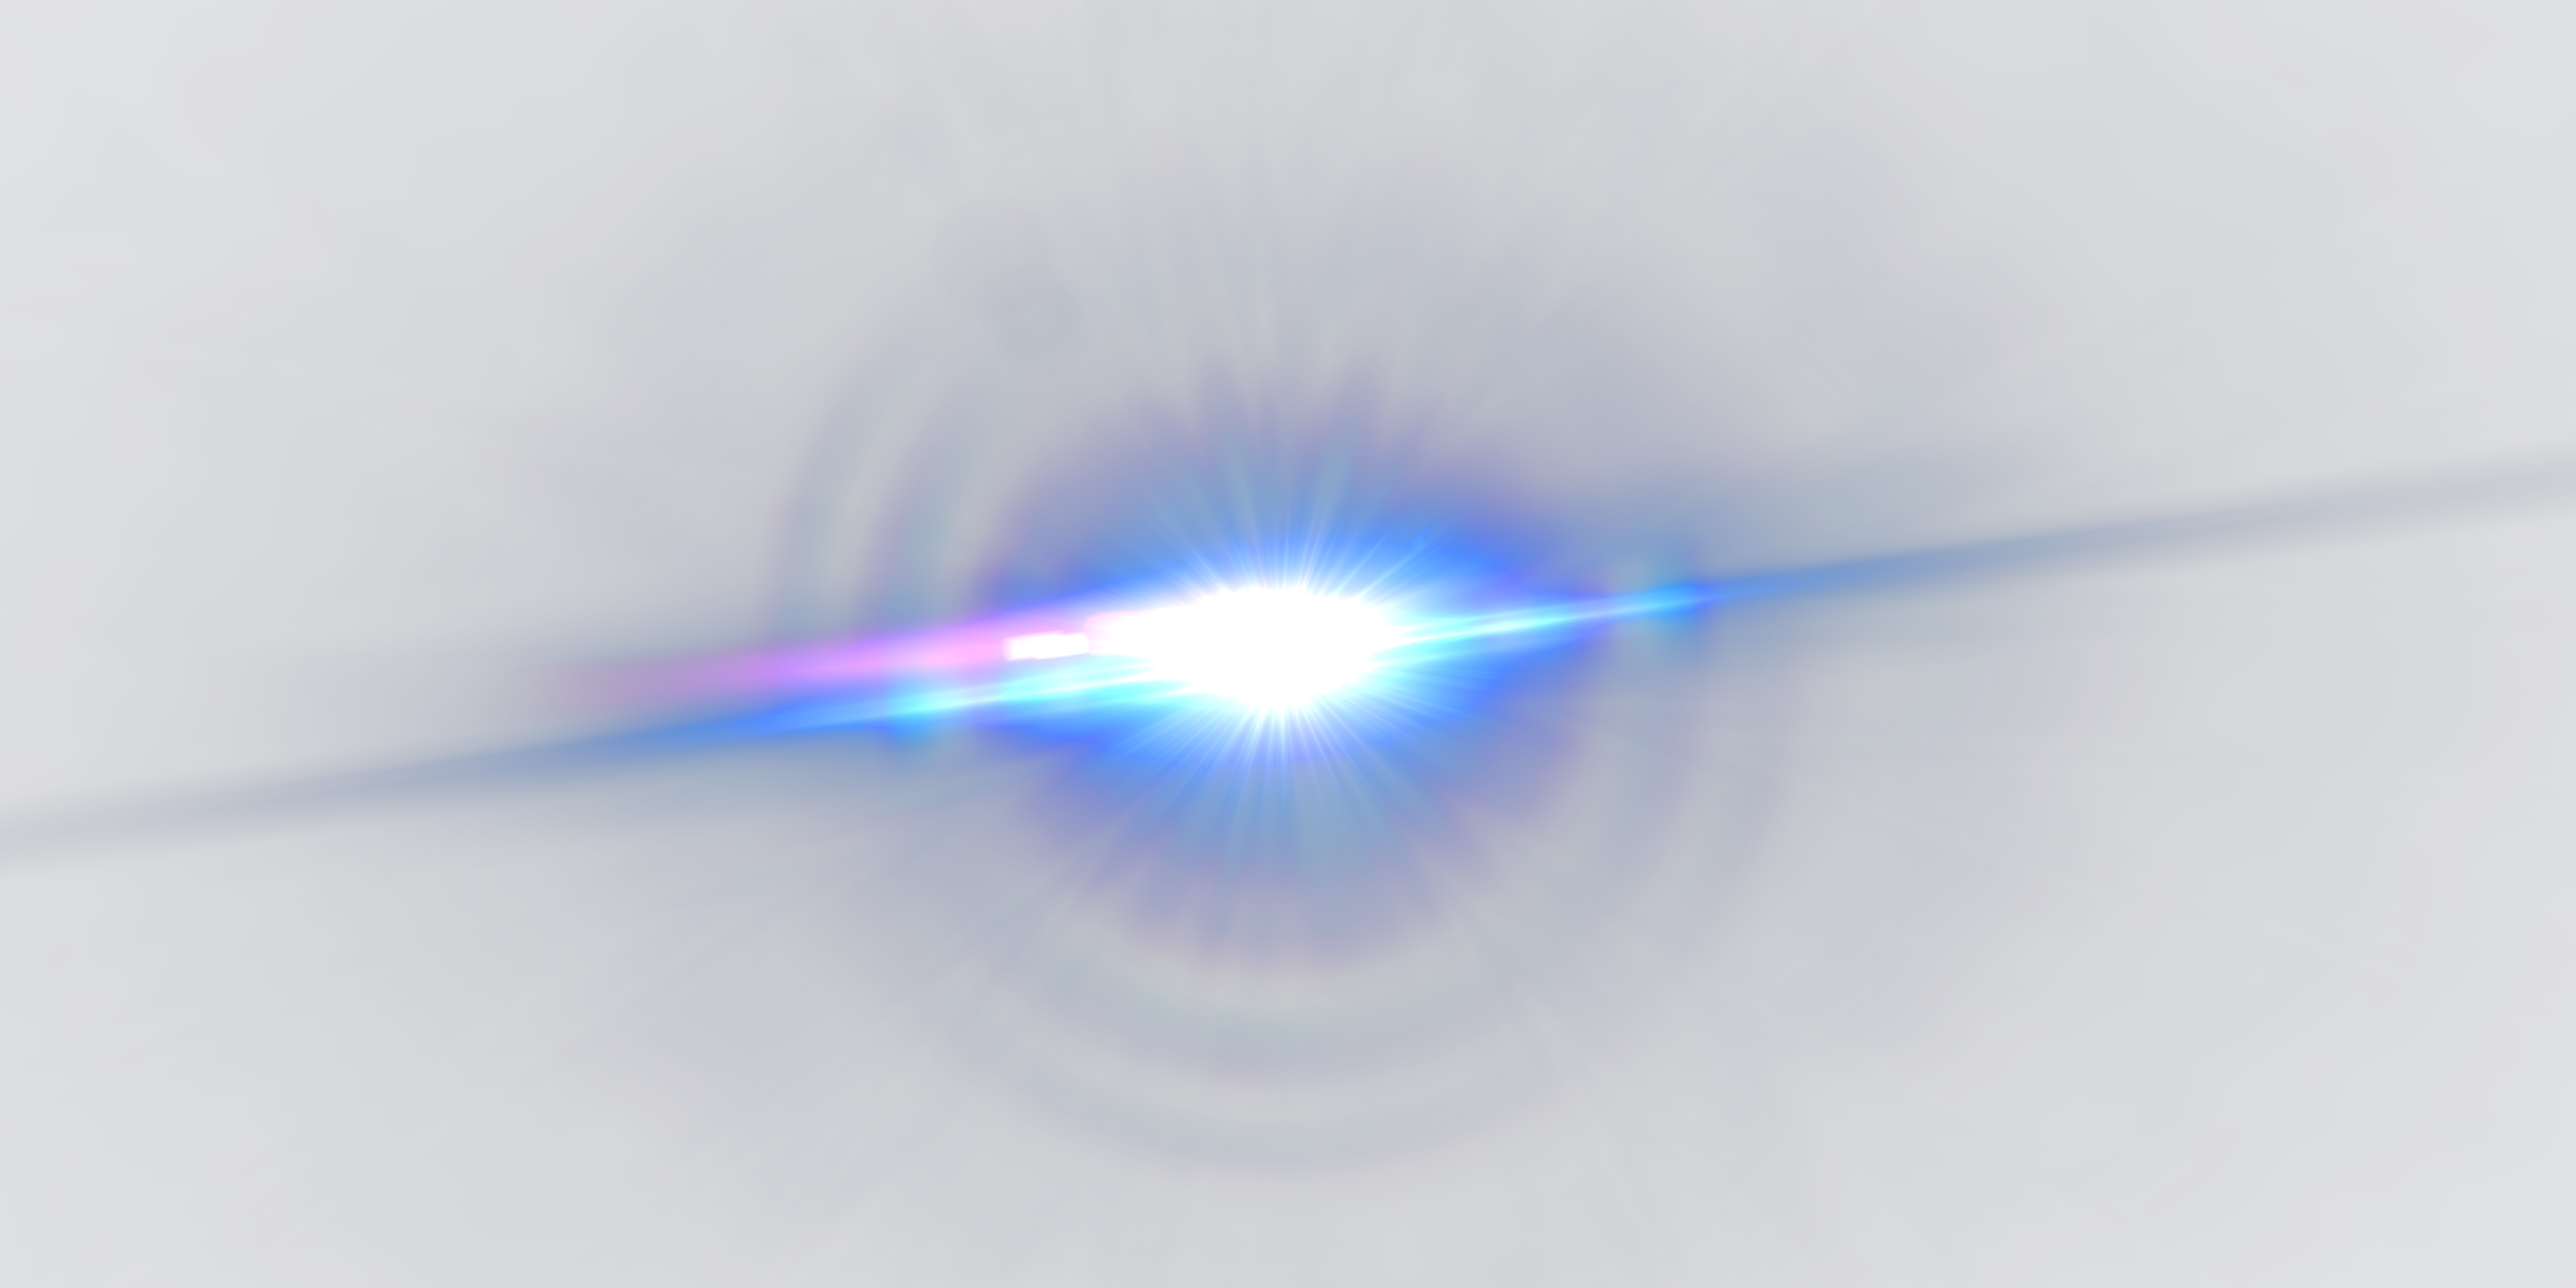 Lens flare photoshop png. Light blue wallpaper glow